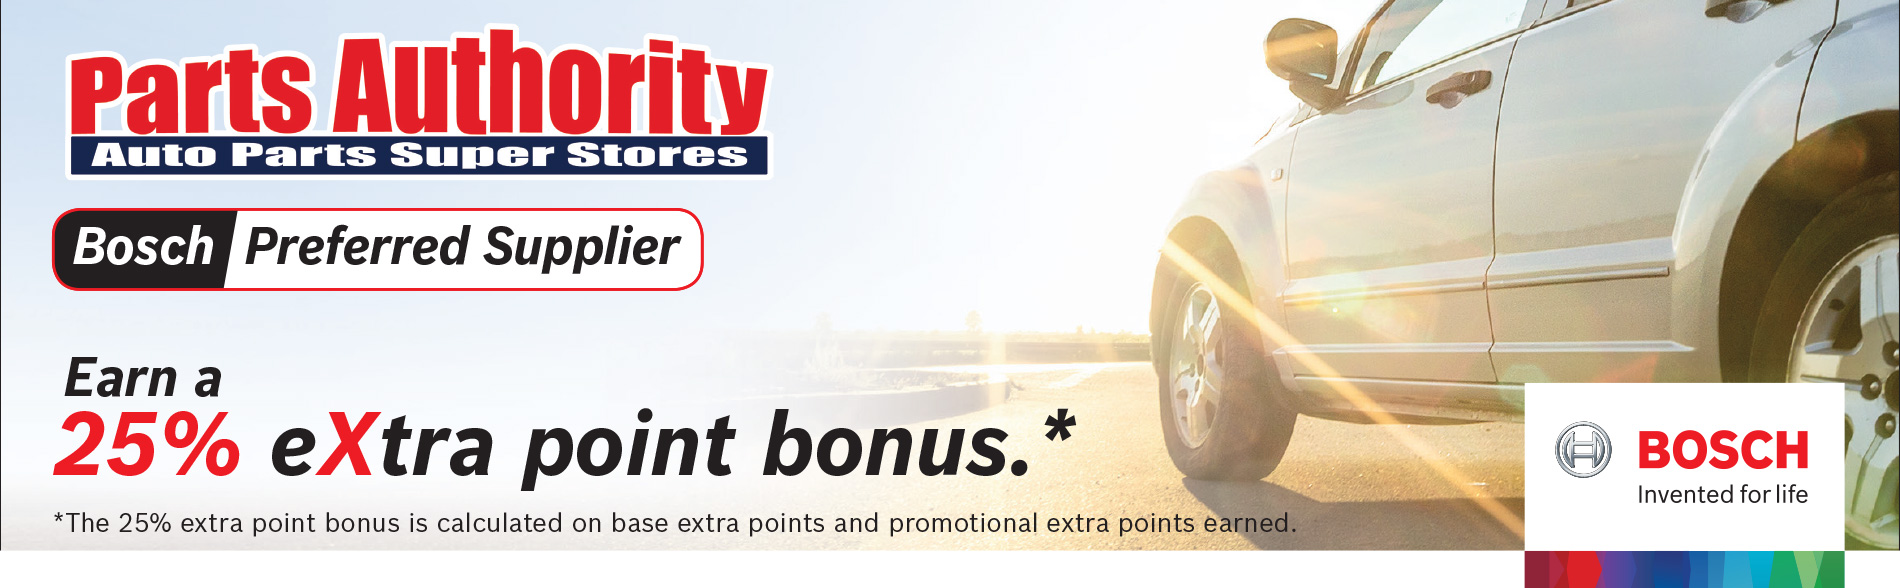 25% extra point bonus on Eligible Bosch-branded Automotive Parts purchased through Parts Authority.